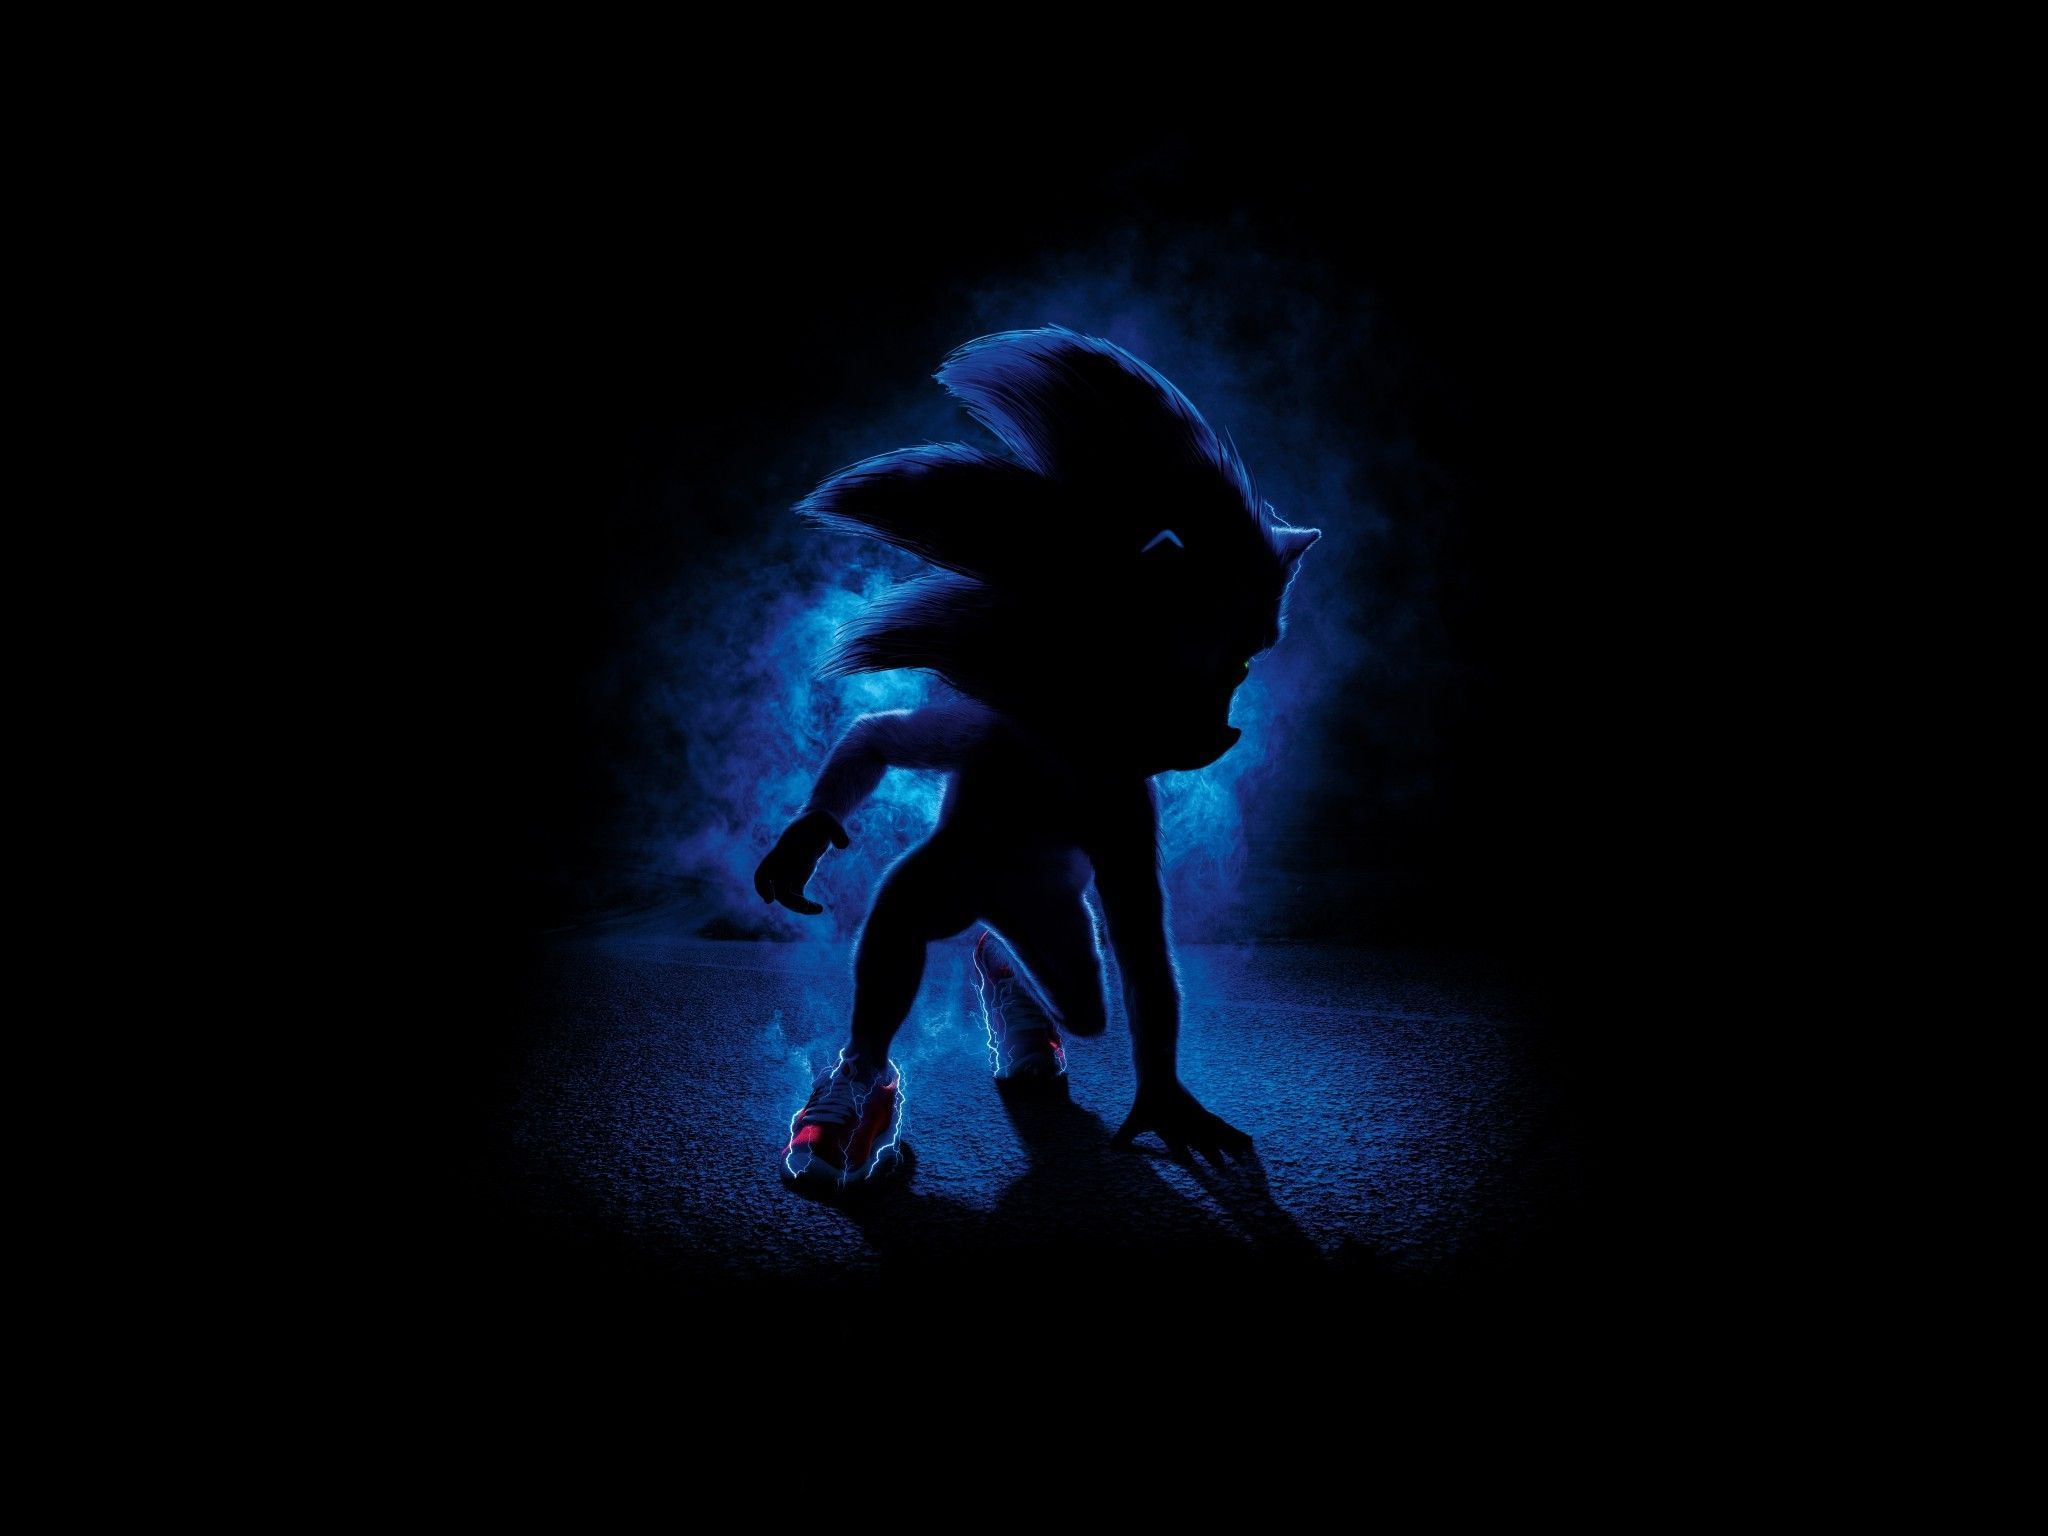 2048x1536 Download 2048x1536 Sonic The Hedgehog 2019, Animation ...